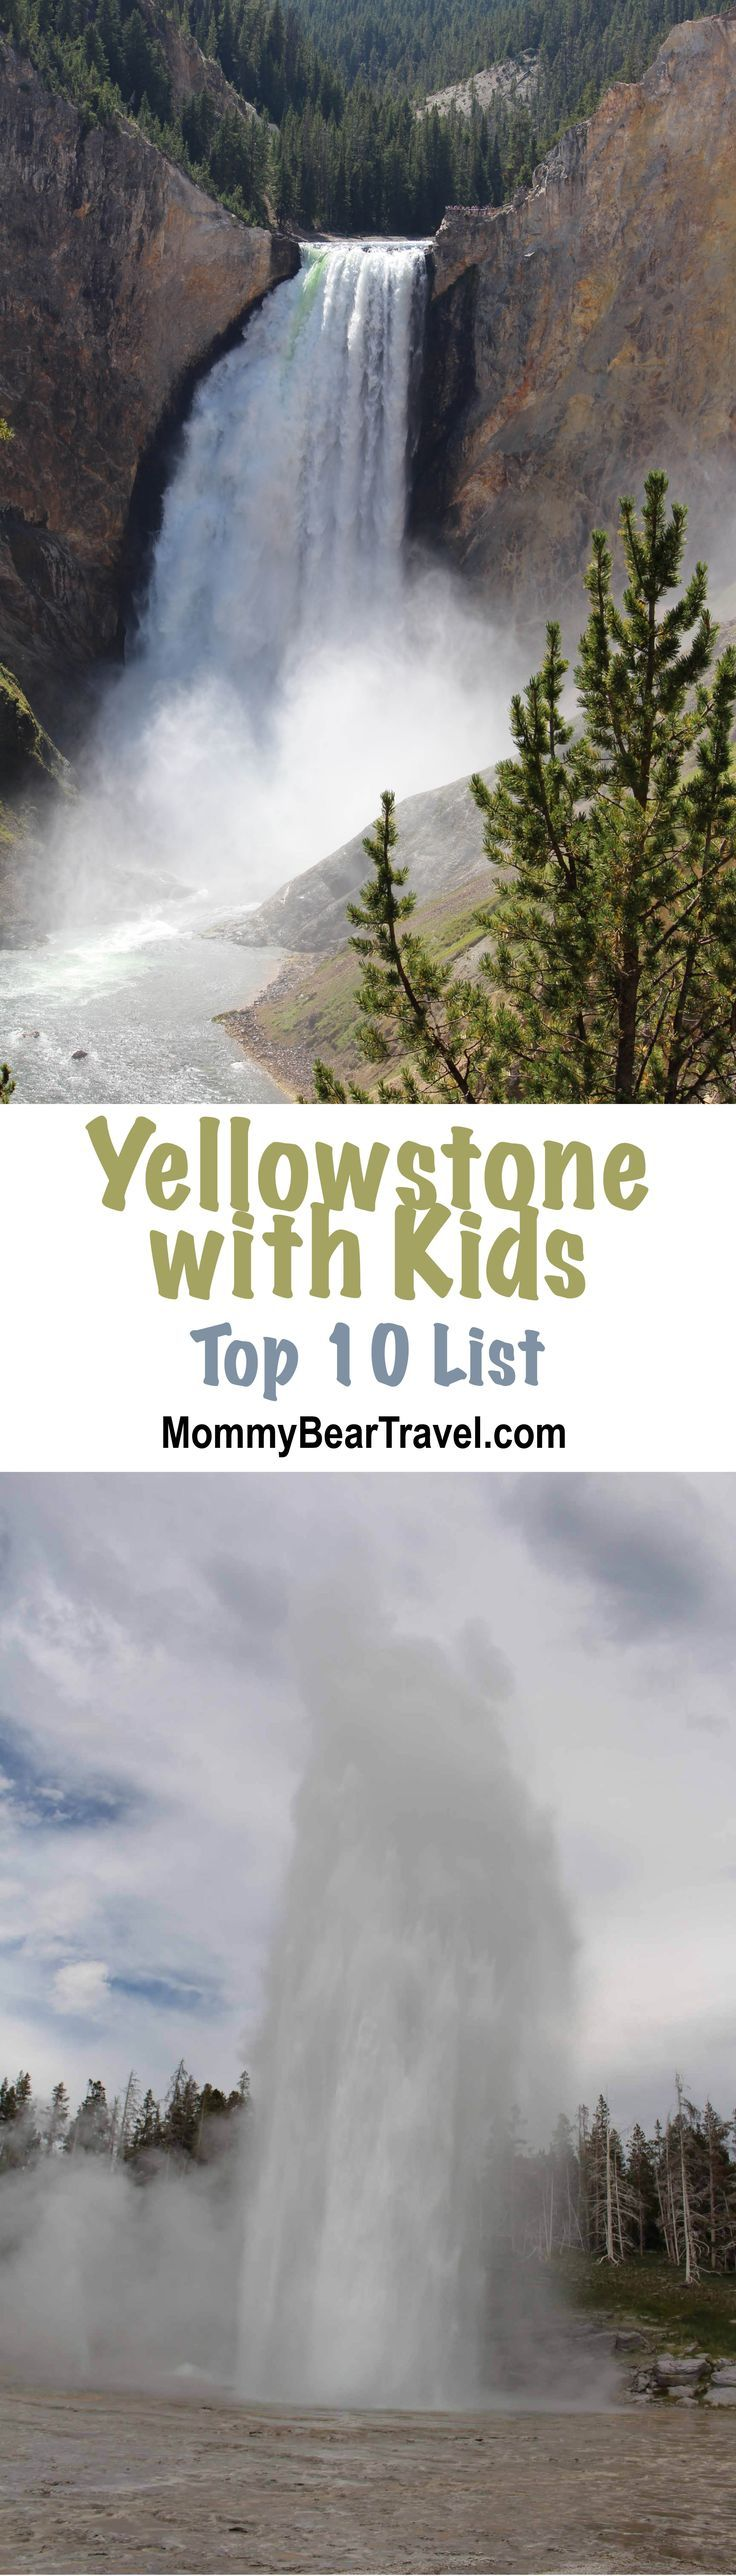 I pinned this so when we take our kids to Yellowstone some day, we can remember all these good places.